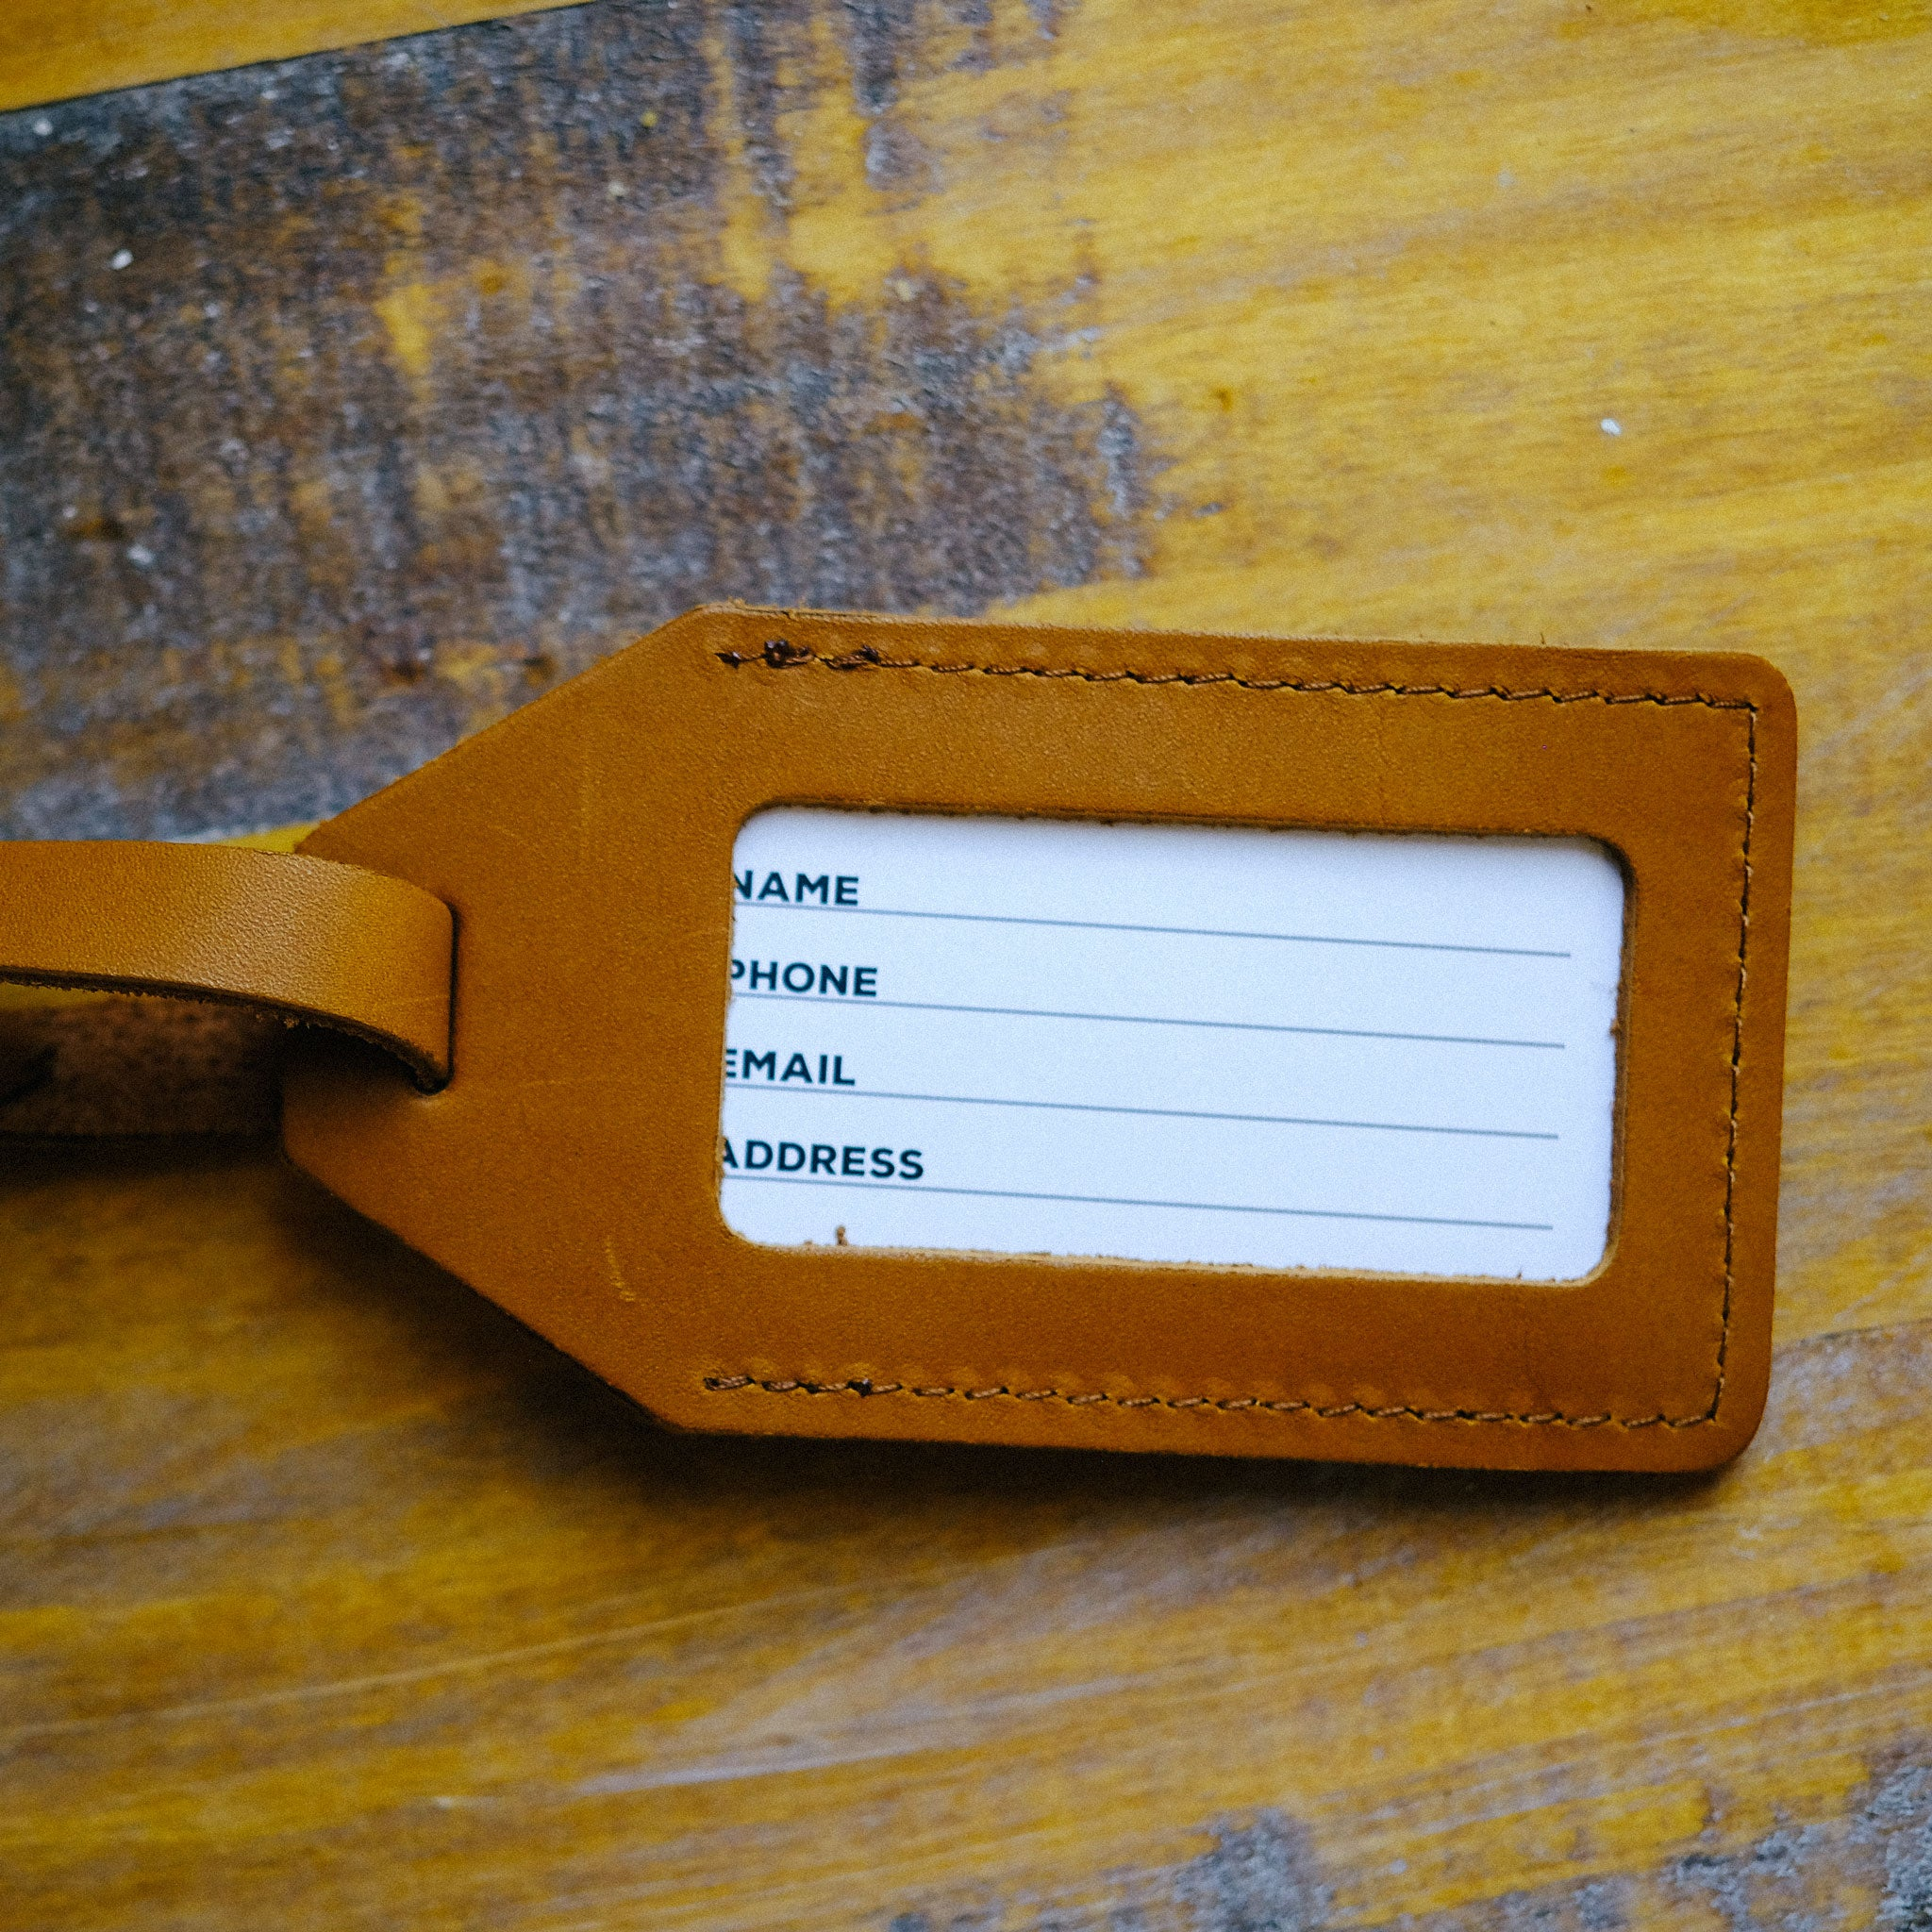 Back view of brown leather luggage tag with clear window for contact information